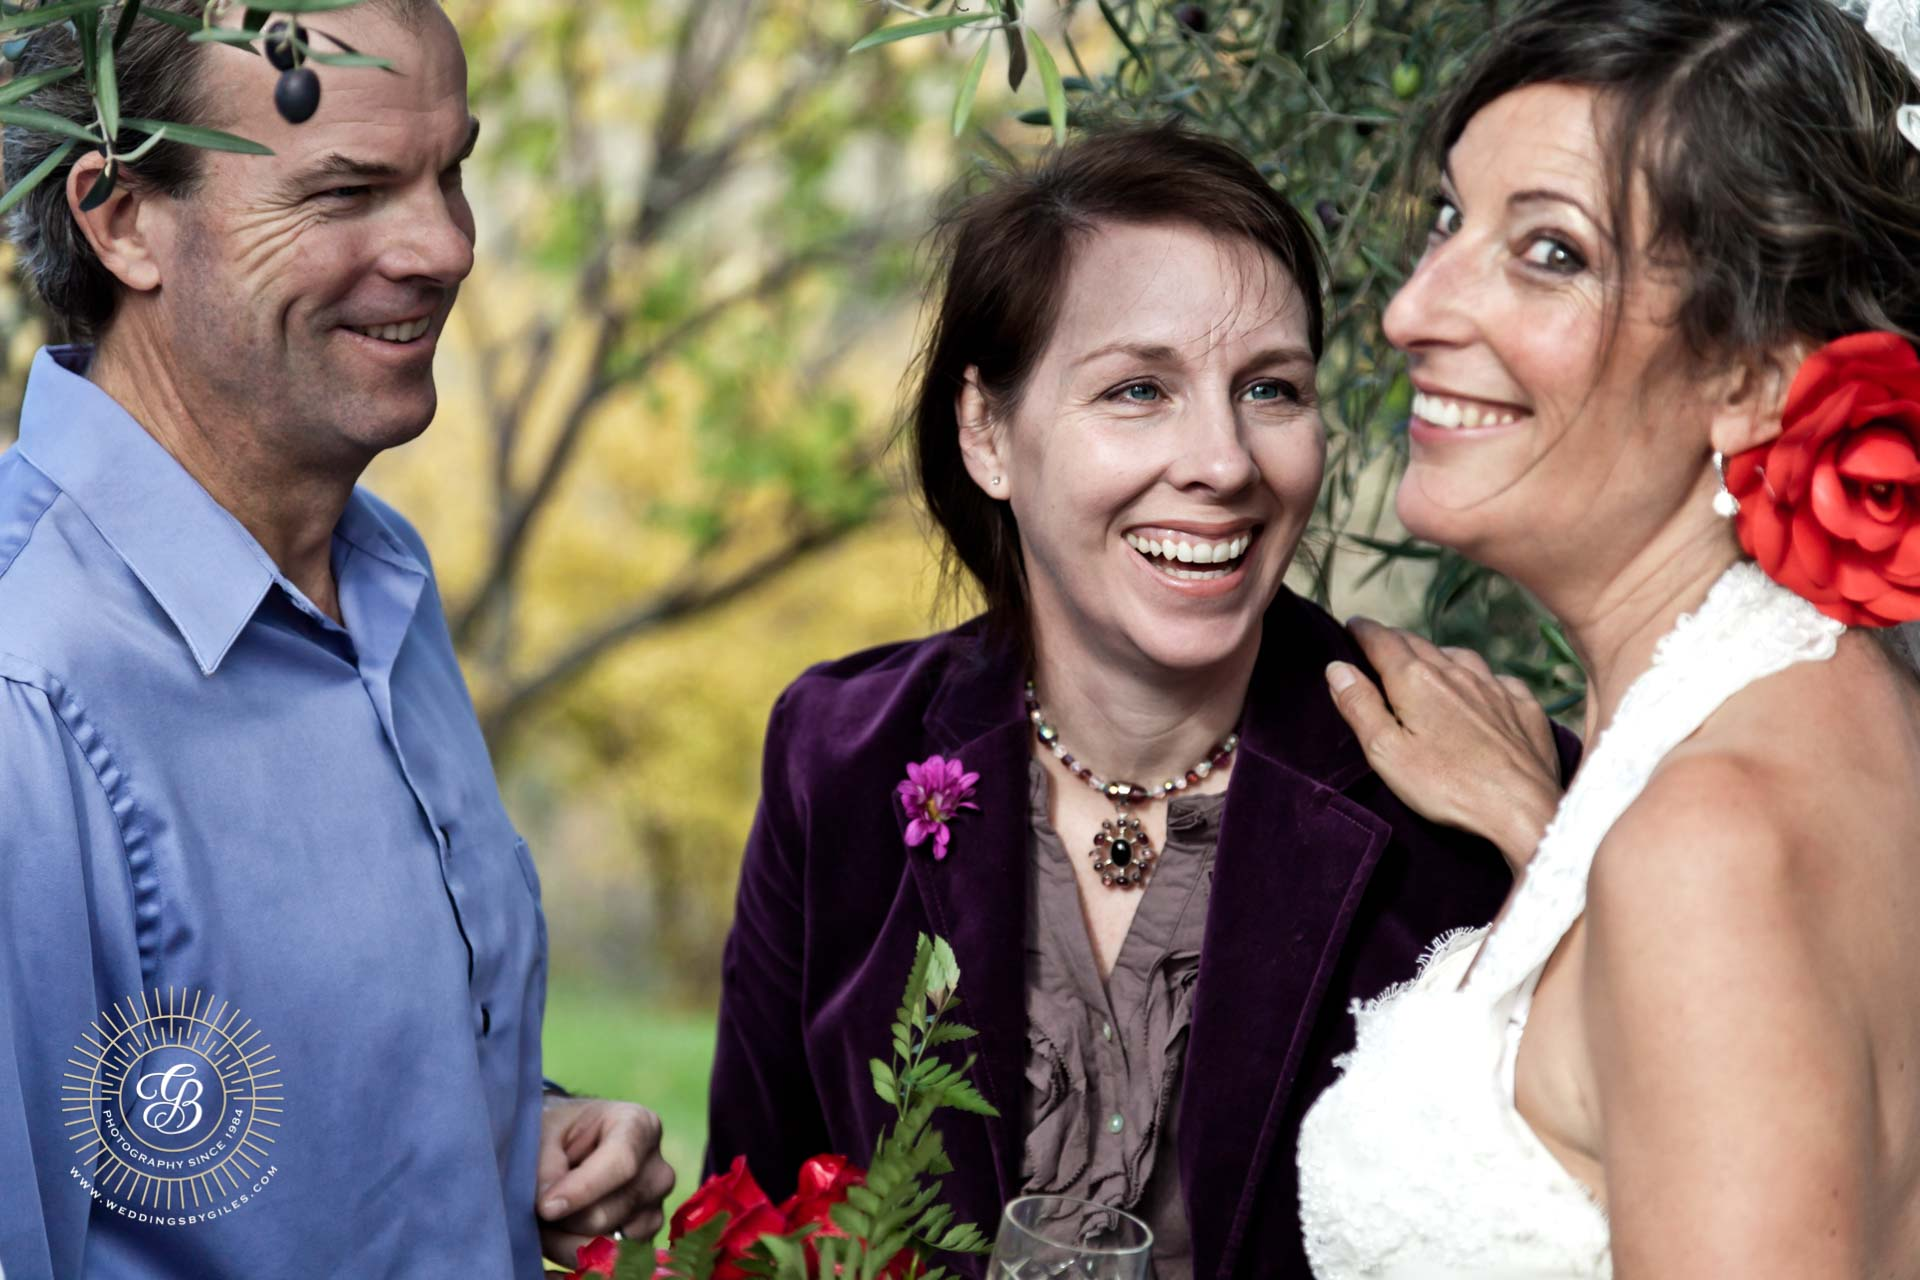 wedding laughter and smiles